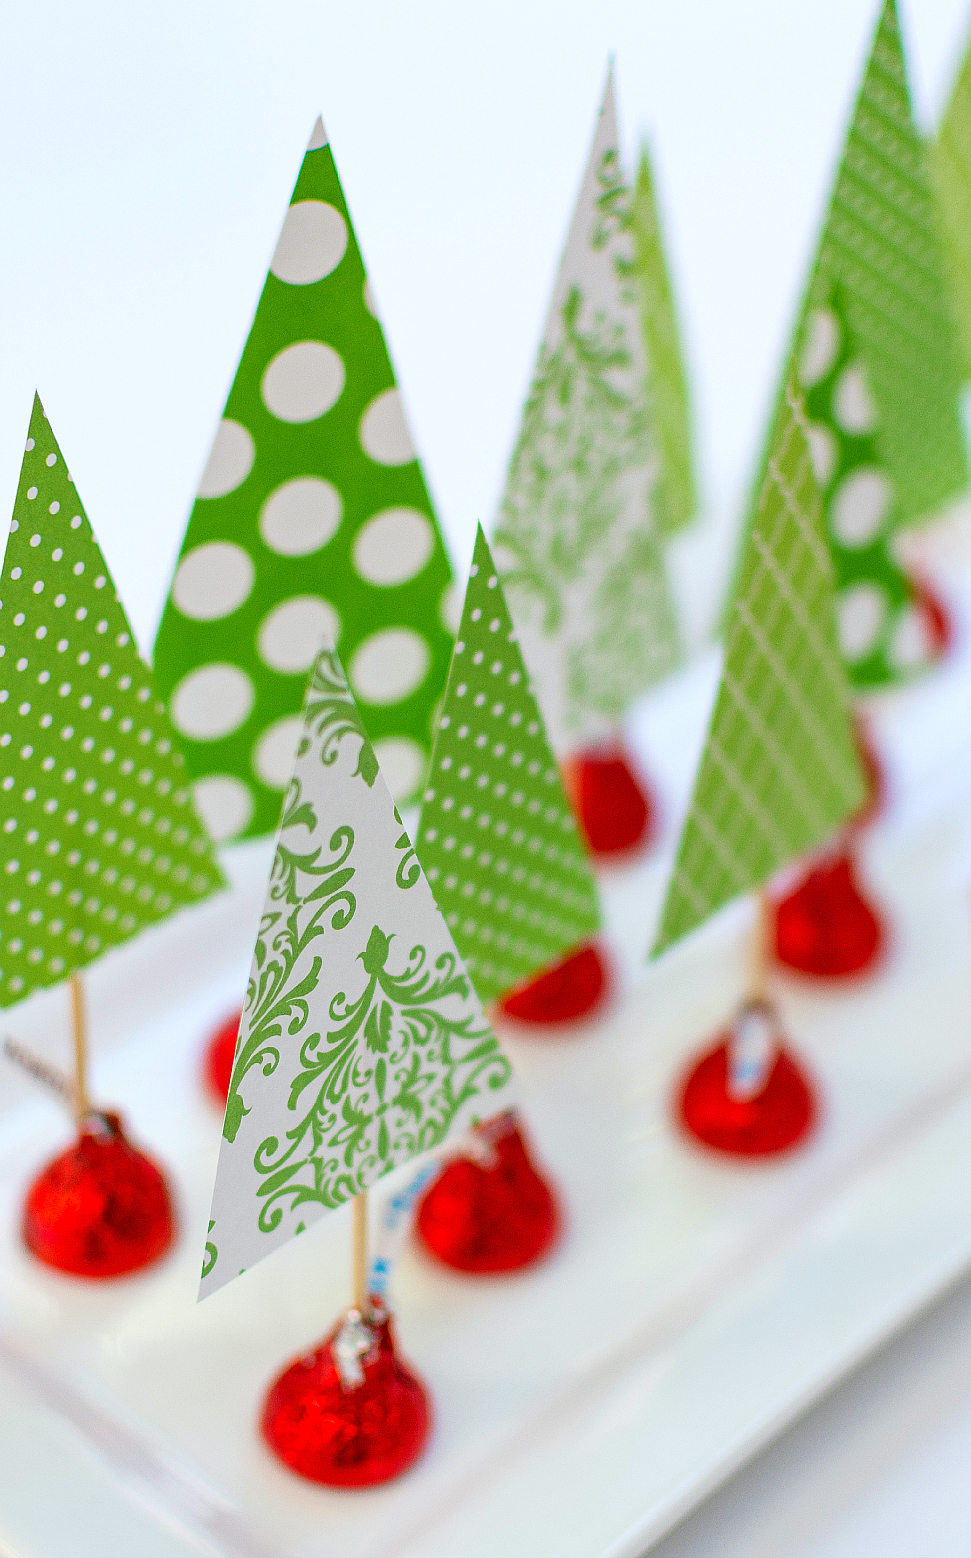 25 forest of treats - Simple Christmas Table Decorations